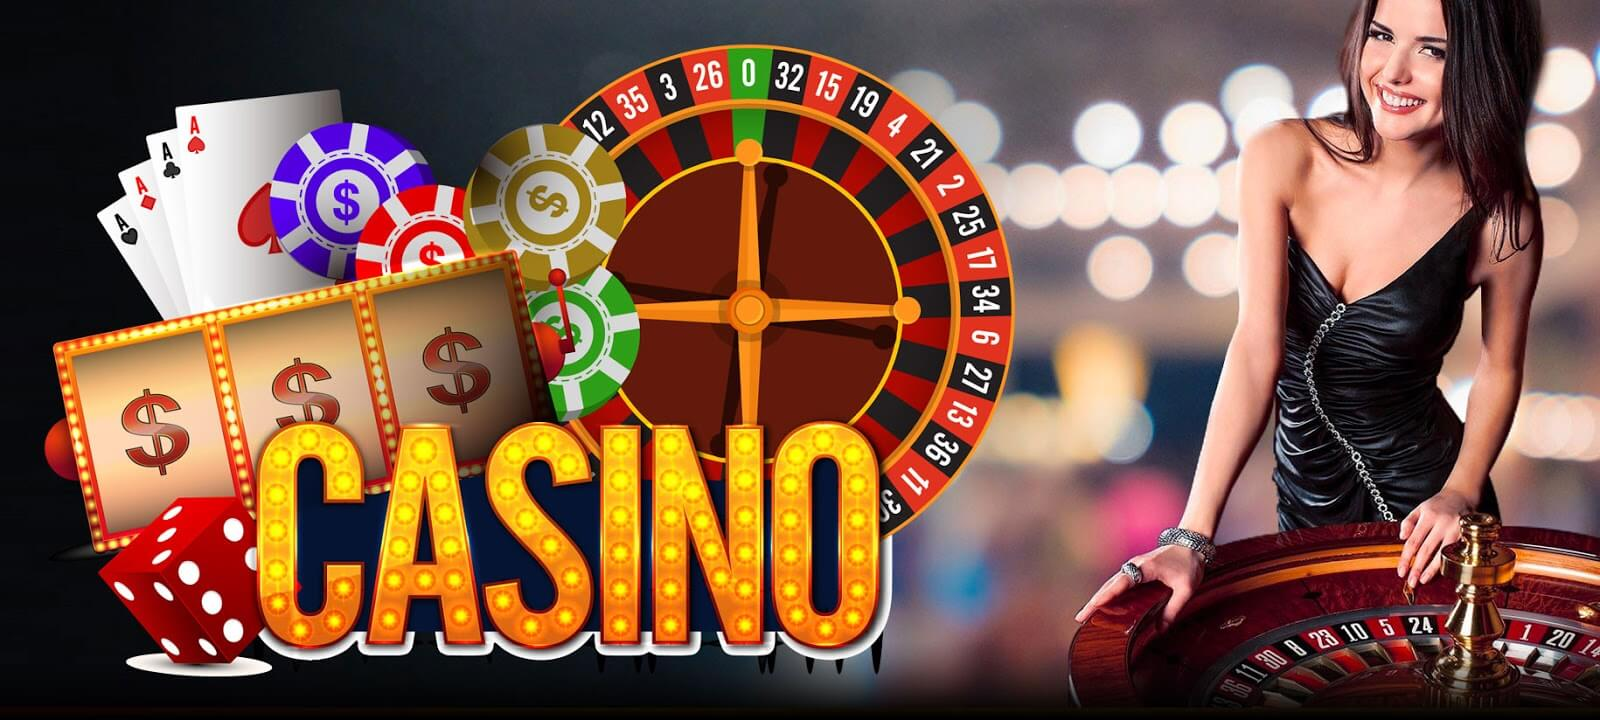 Online Casino Canada Real Money – Why You Should Consider Real Money Gambling